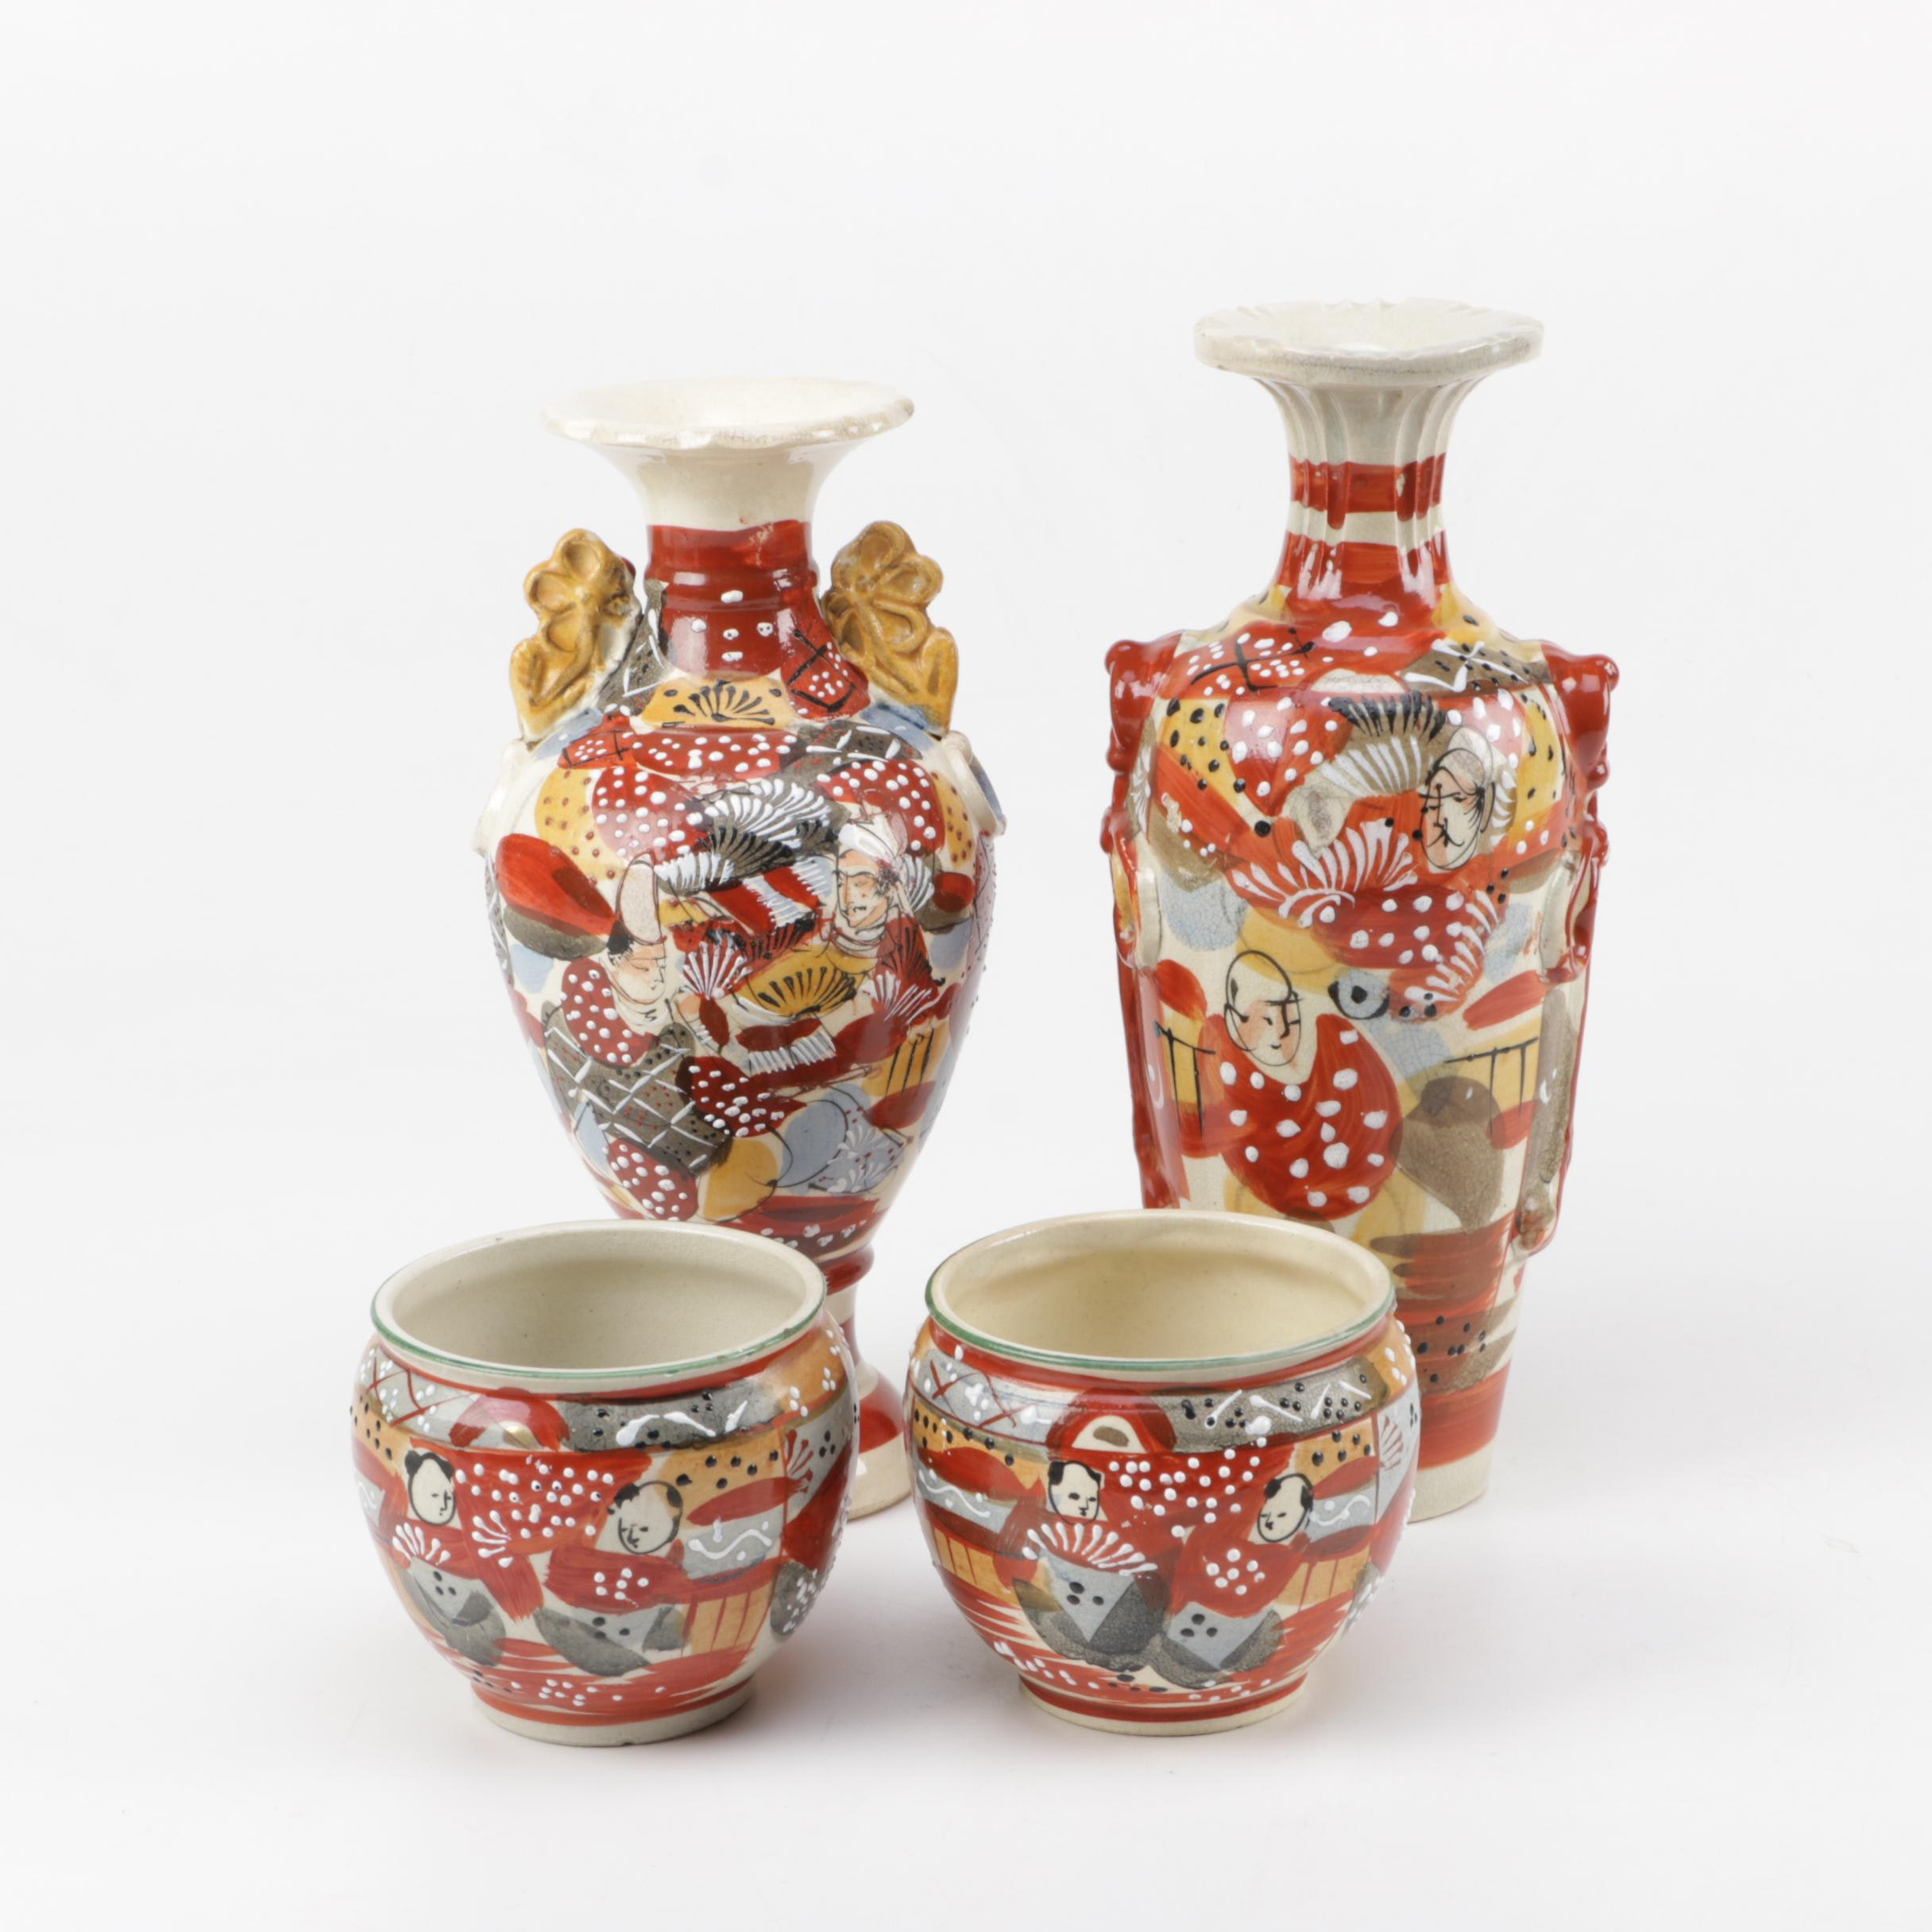 Vintage Japanese Moriage Vases and Bowls